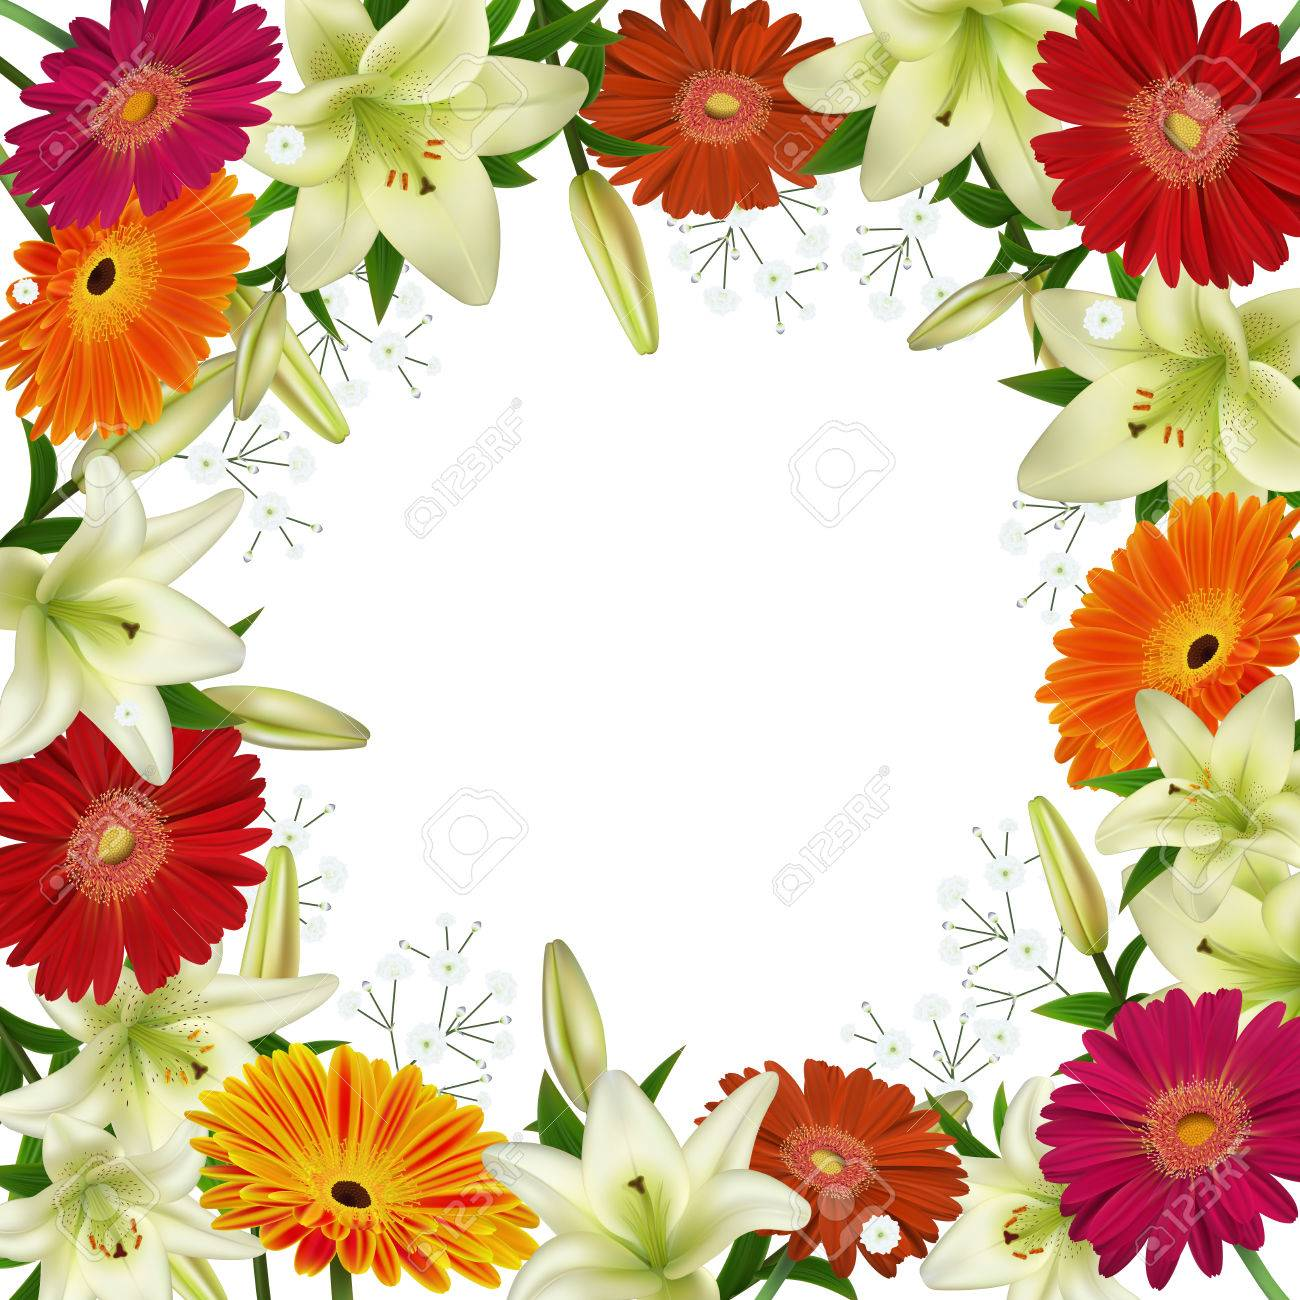 illustration of greeting or invitation card template with lily